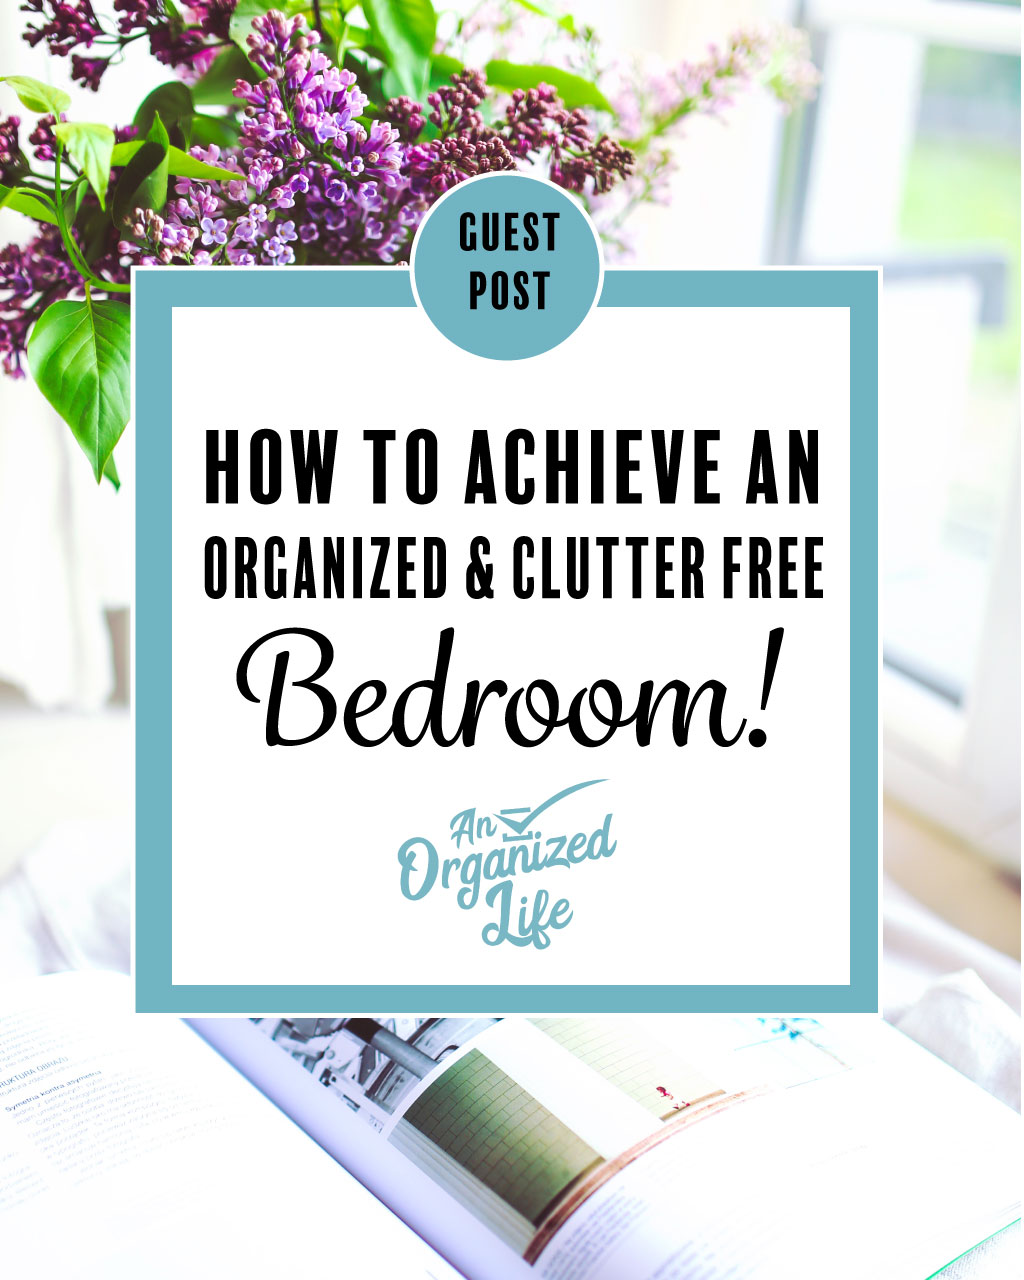 Organized and Clutter Free Bedroom!